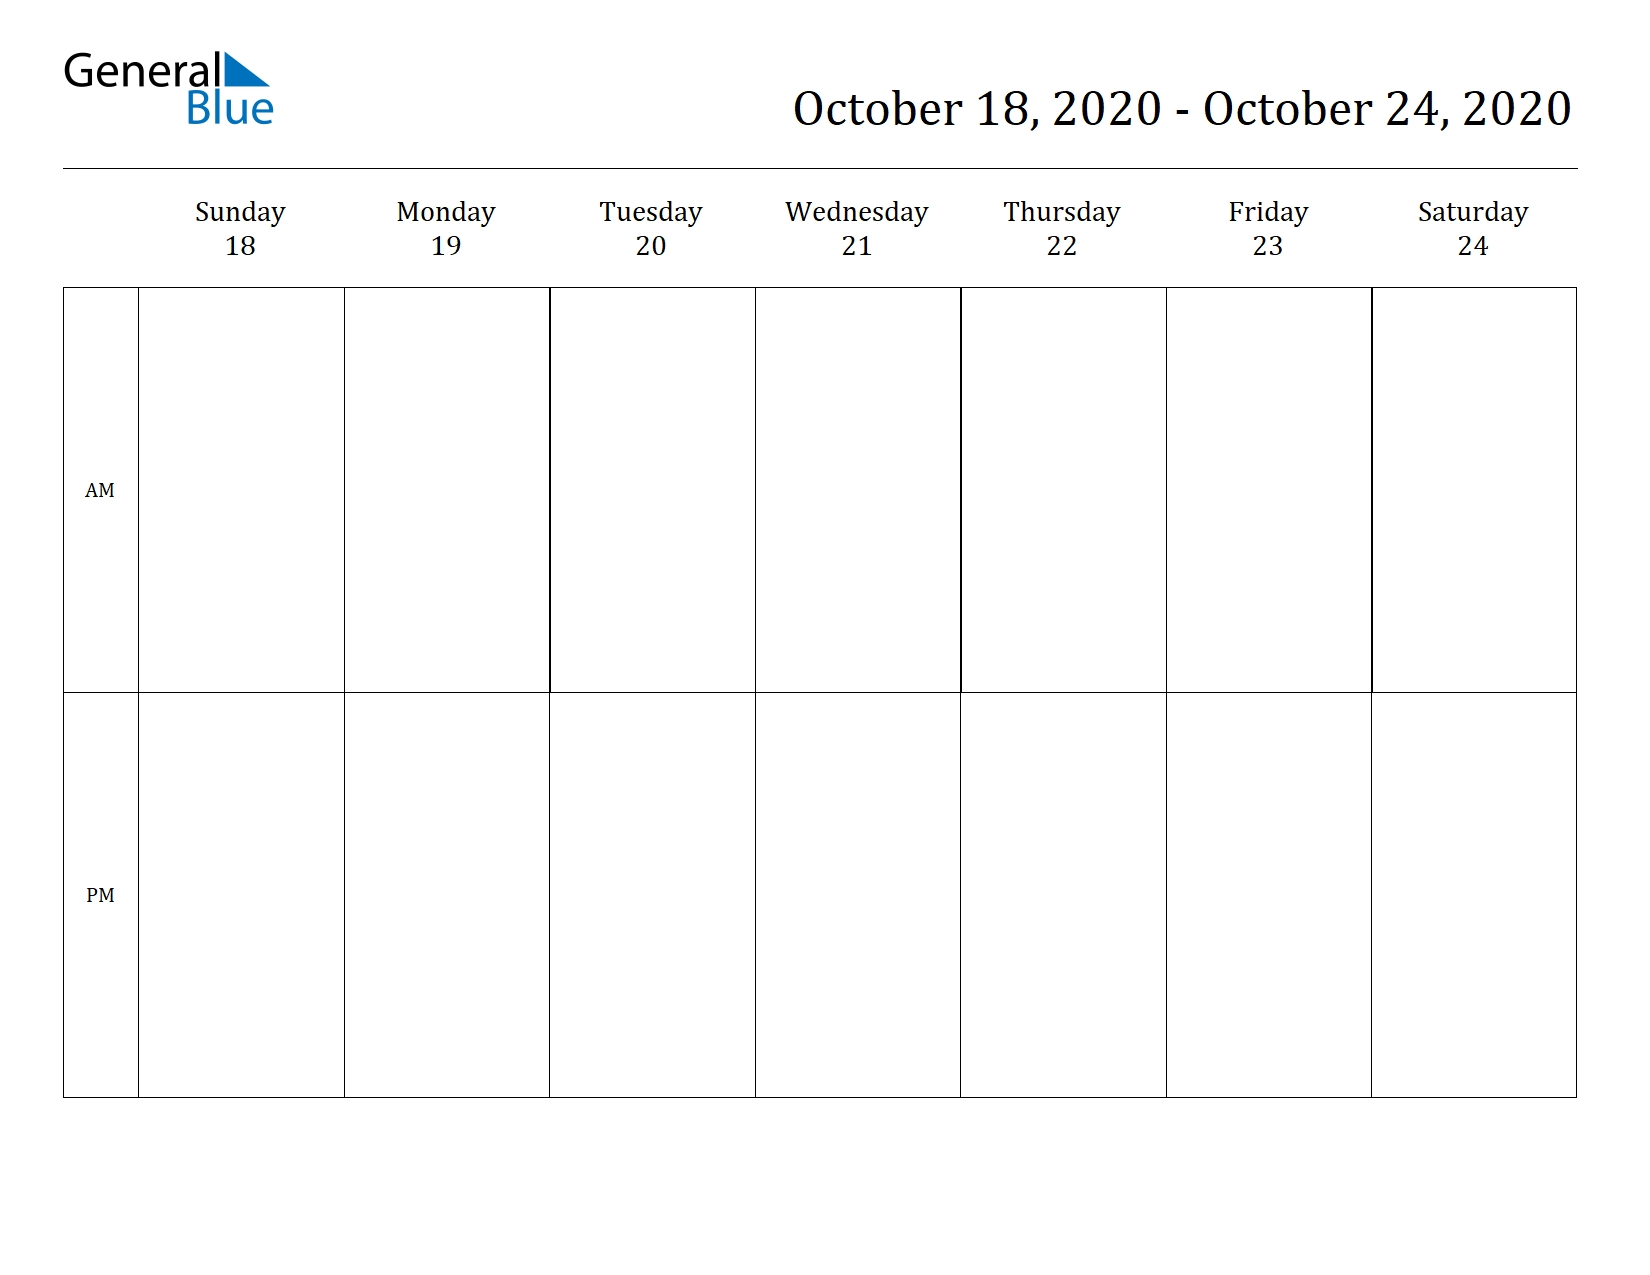 Weekly Calendar - October 18, 2020 To October 24, 2020